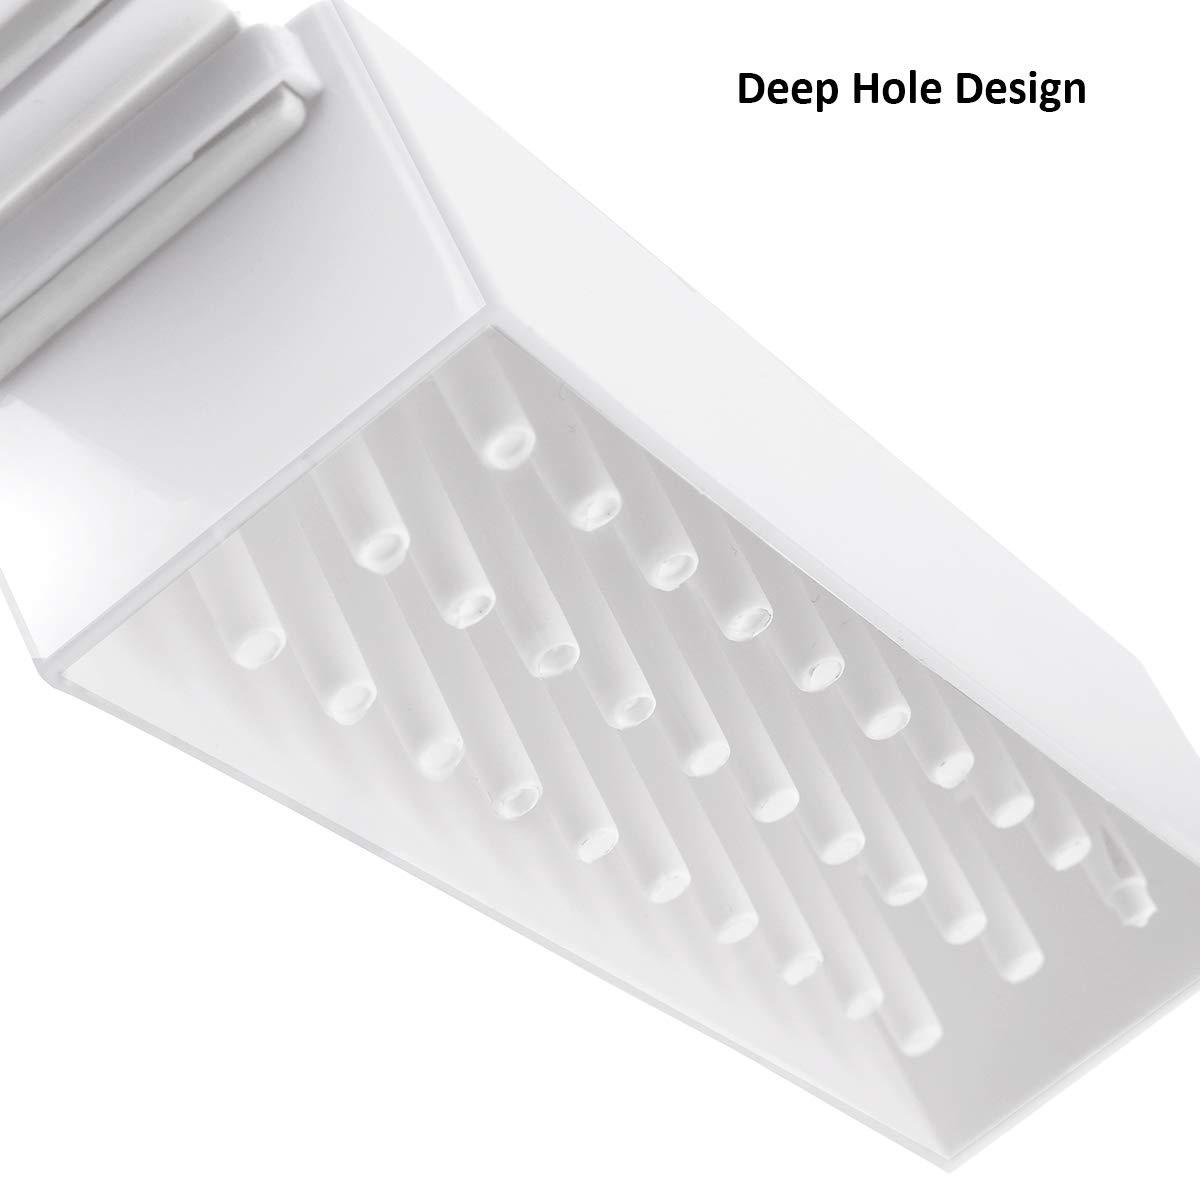 30 Hole Nail Drill Bits Organizer in White (Drill Bits Not Included) (B-22)